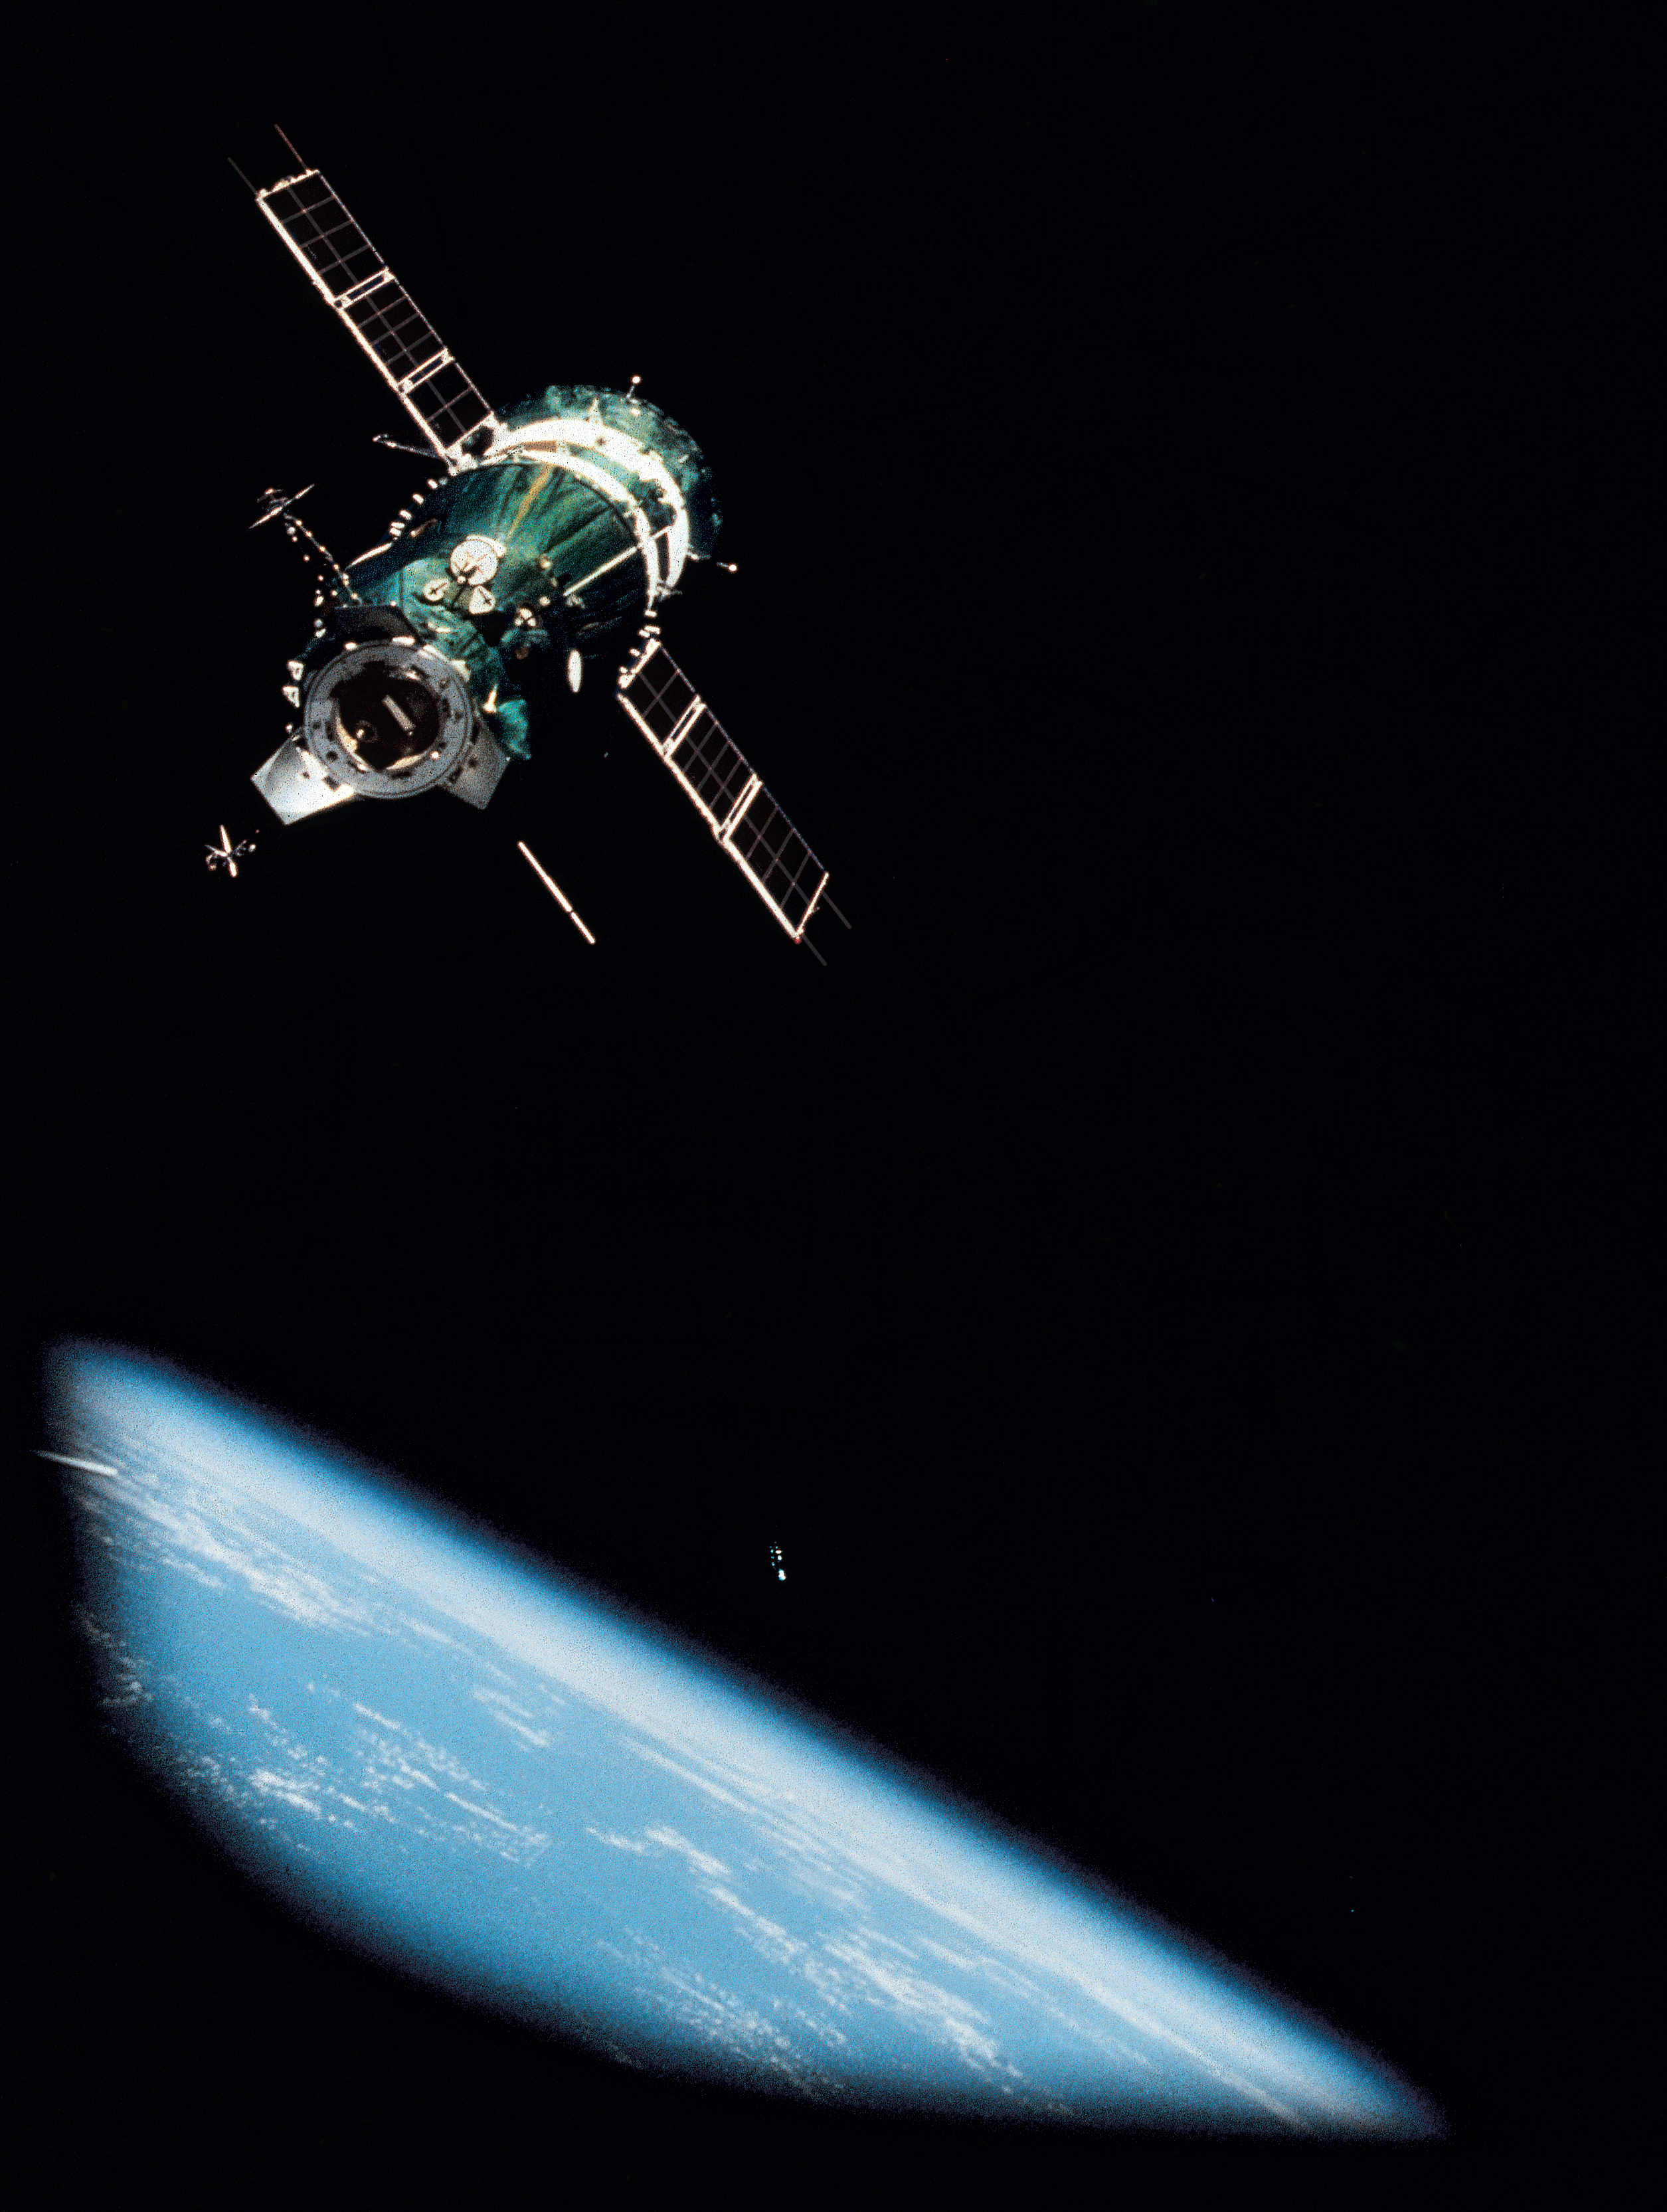 The Soviet Soyuz spacecraft approaches the Apollo for linkup in space, the first rendezvous and docking of vessels from different nations.